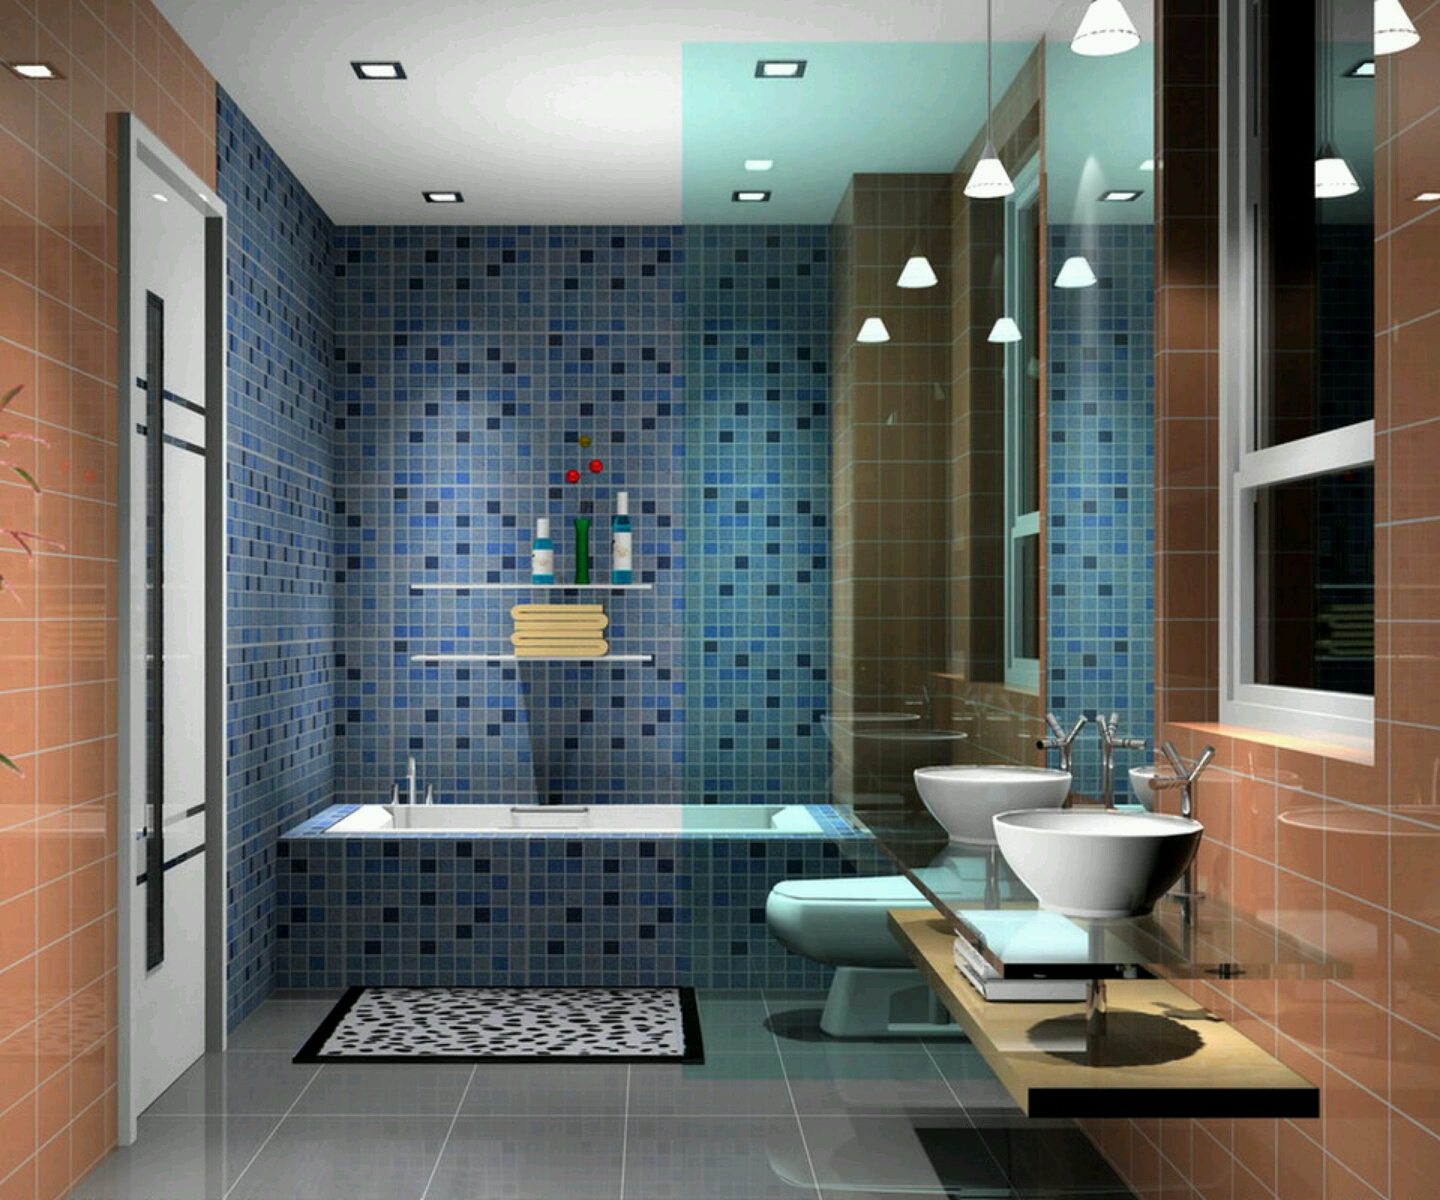 New home designs latest modern bathrooms best designs ideas for Design of the bathroom